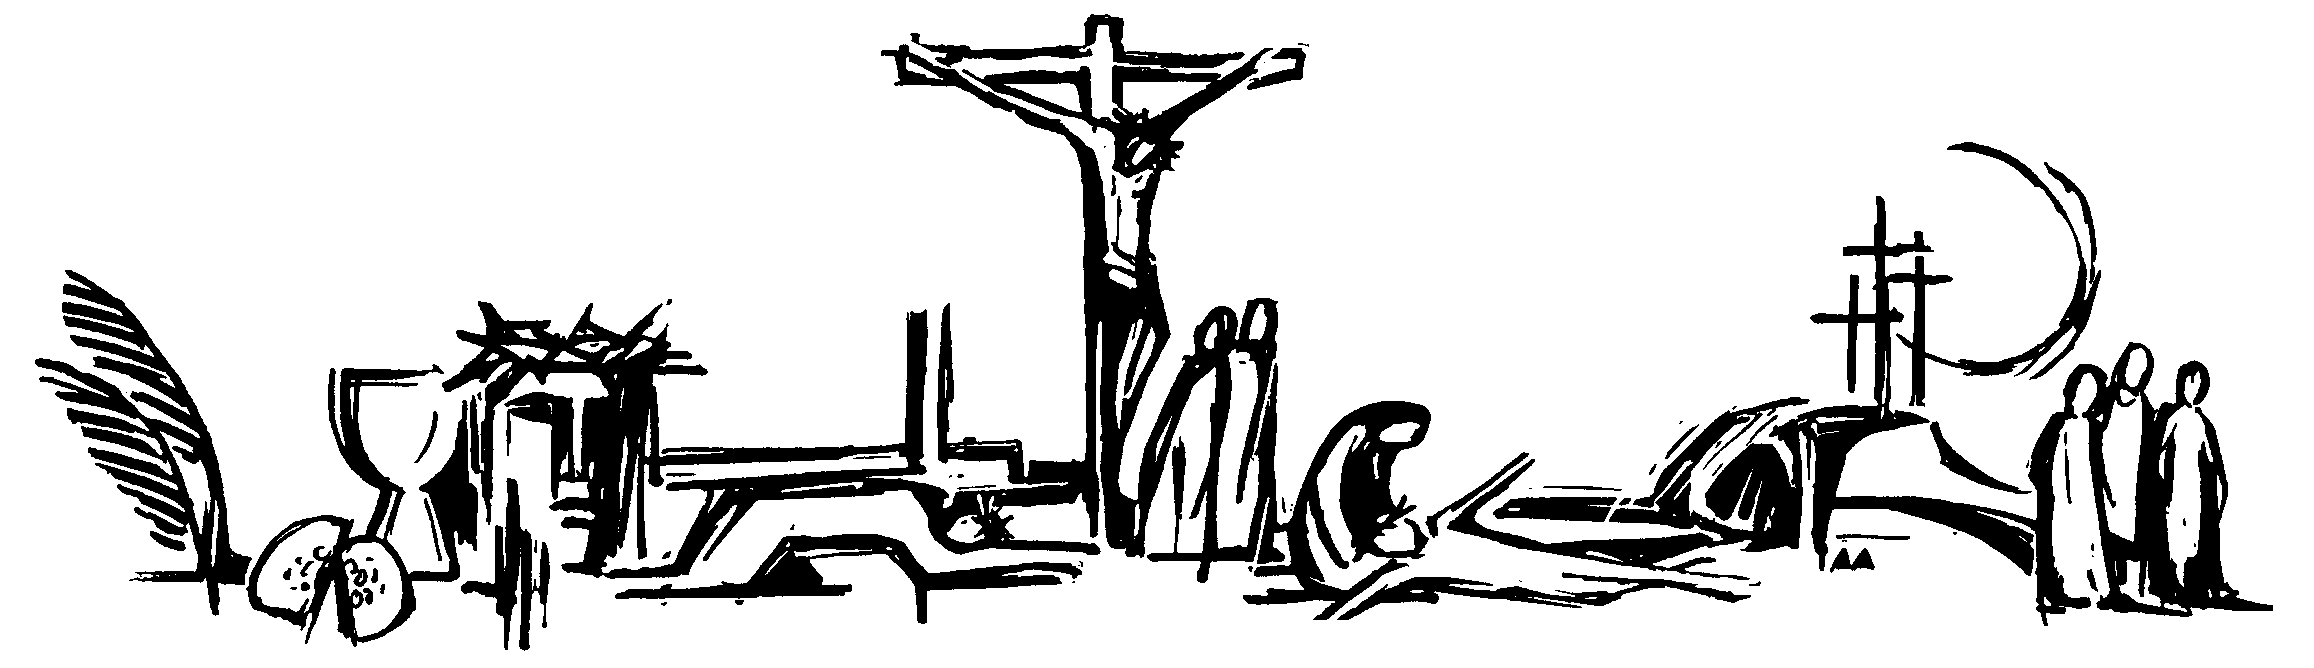 Holy week clipart lent symbol. Test your easter bible